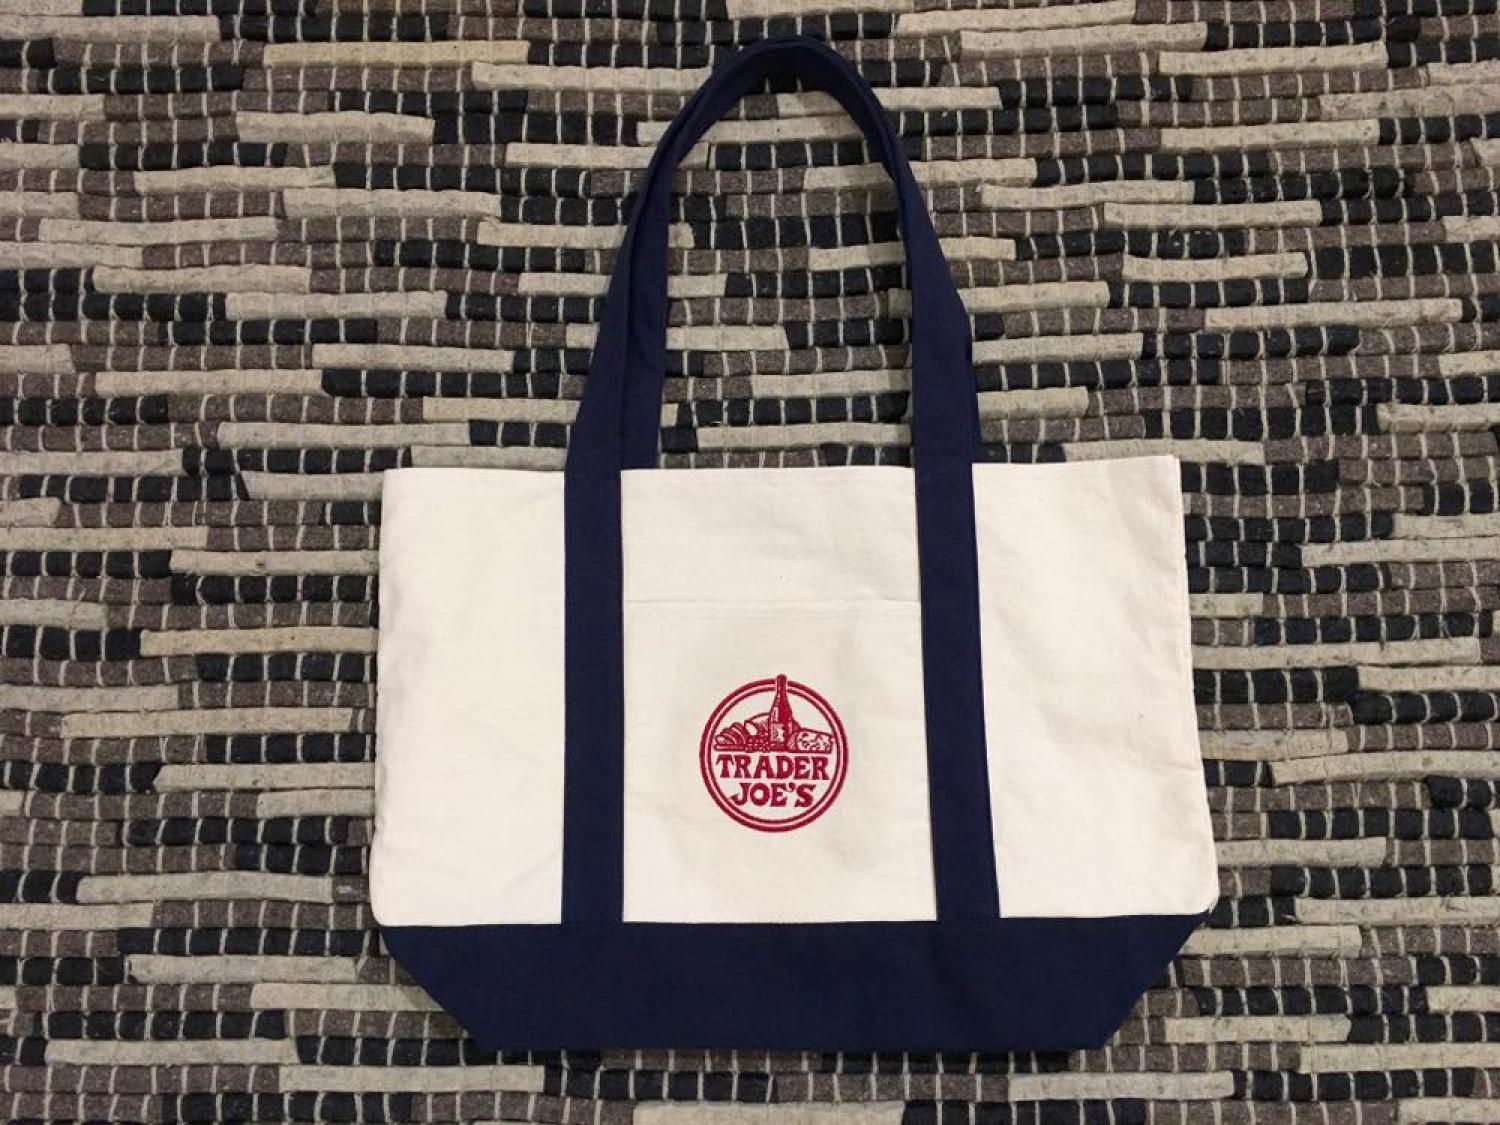 TRADER JOE'S Reusable Cotton Tote Bag